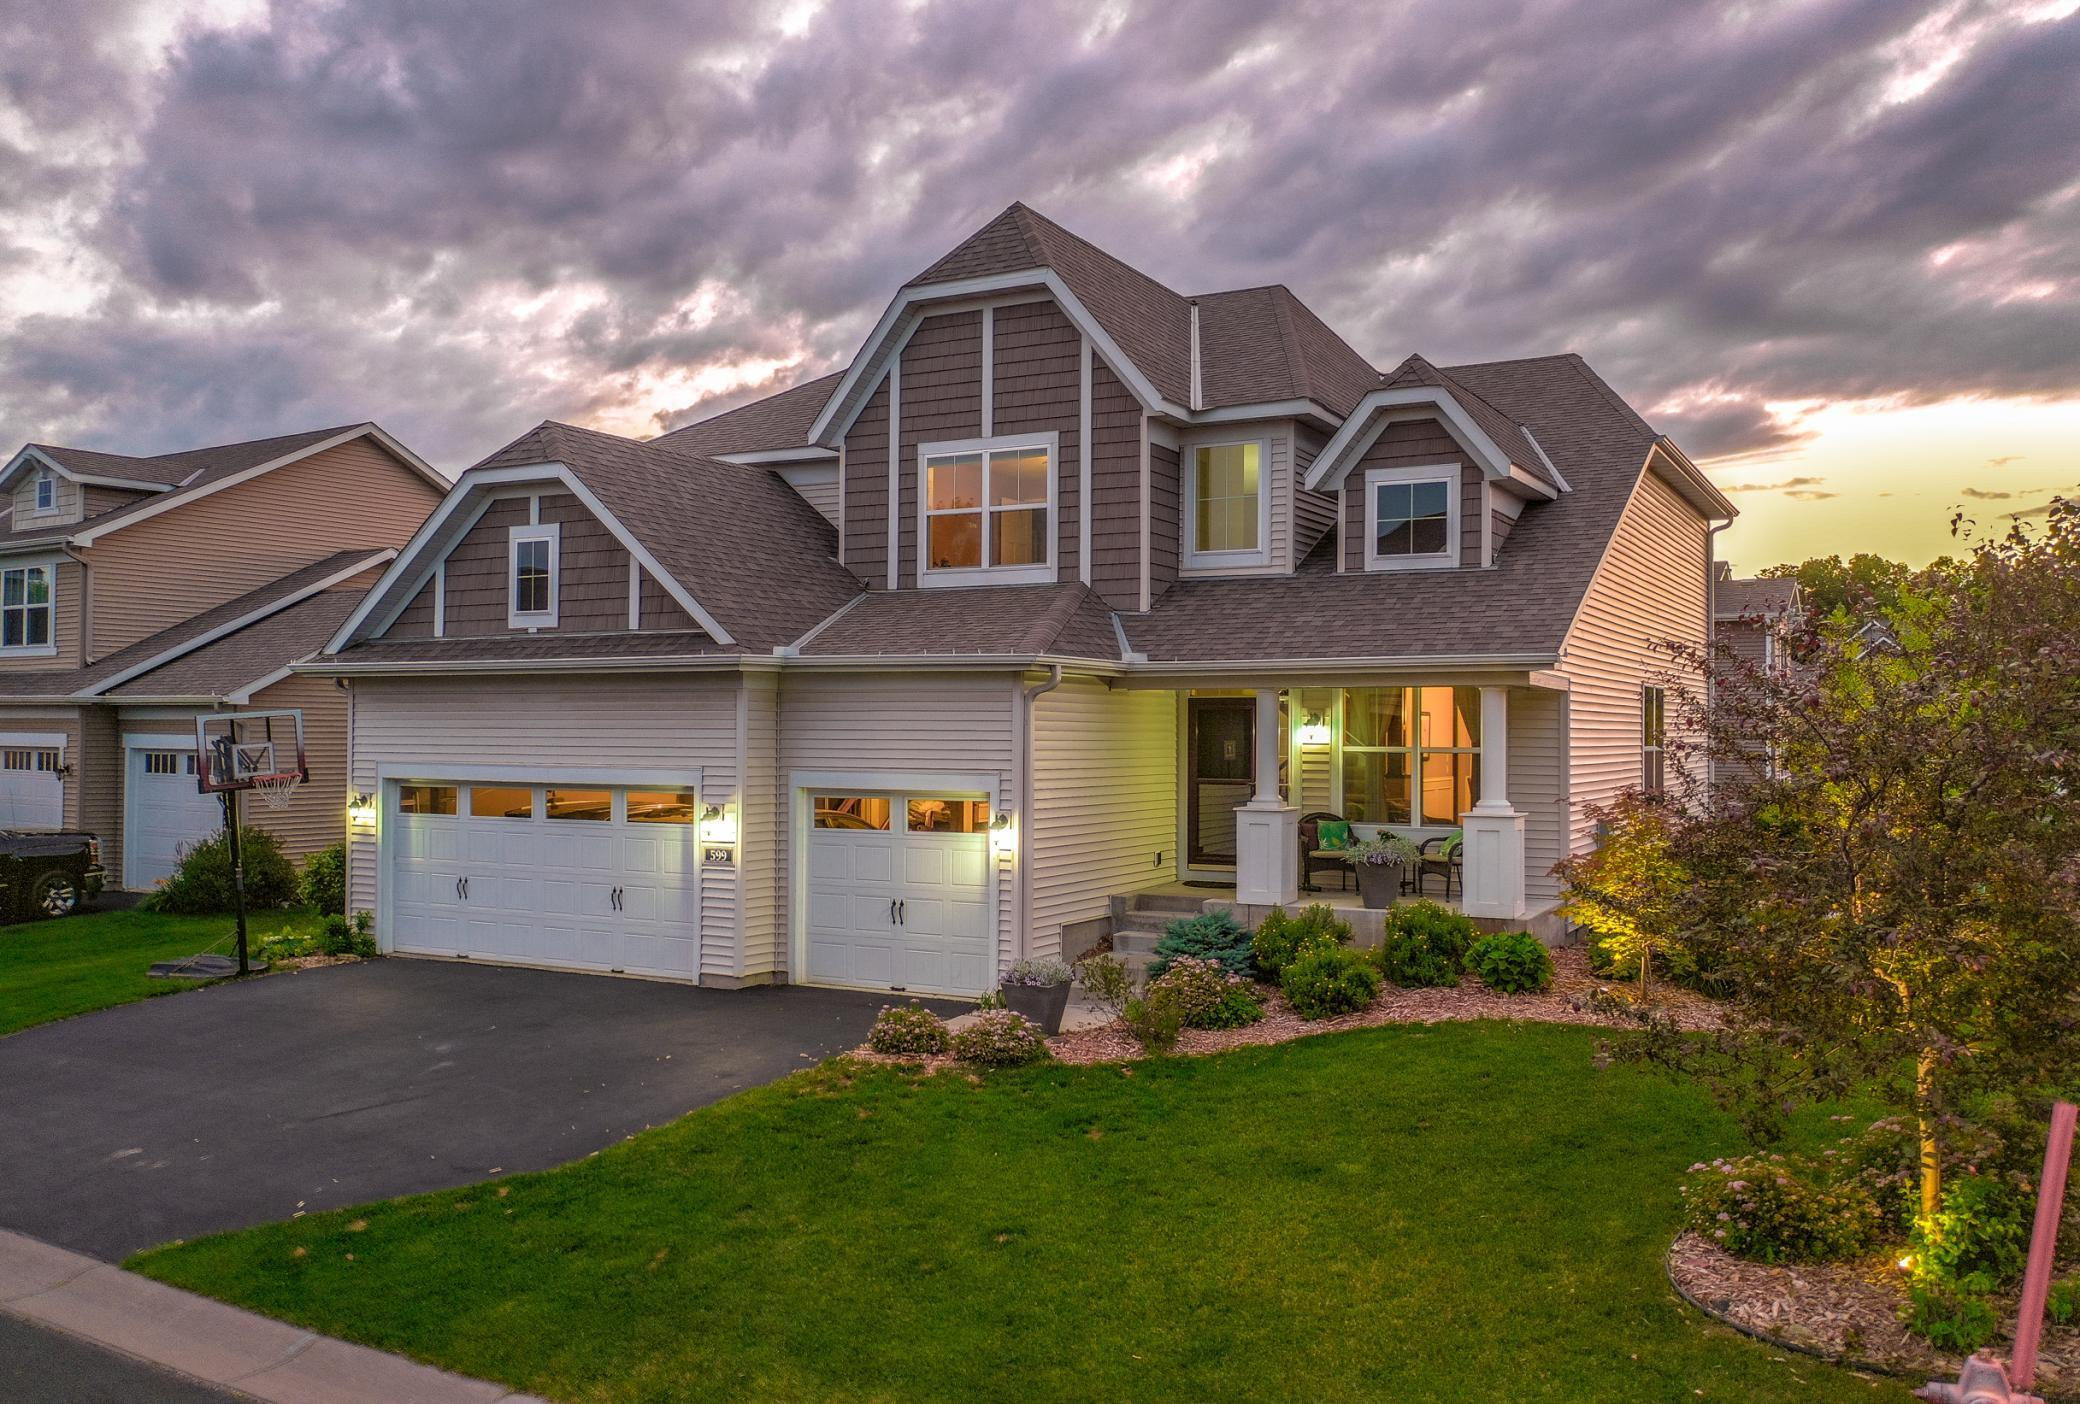 599 Eastgate Property Photo - Mahtomedi, MN real estate listing